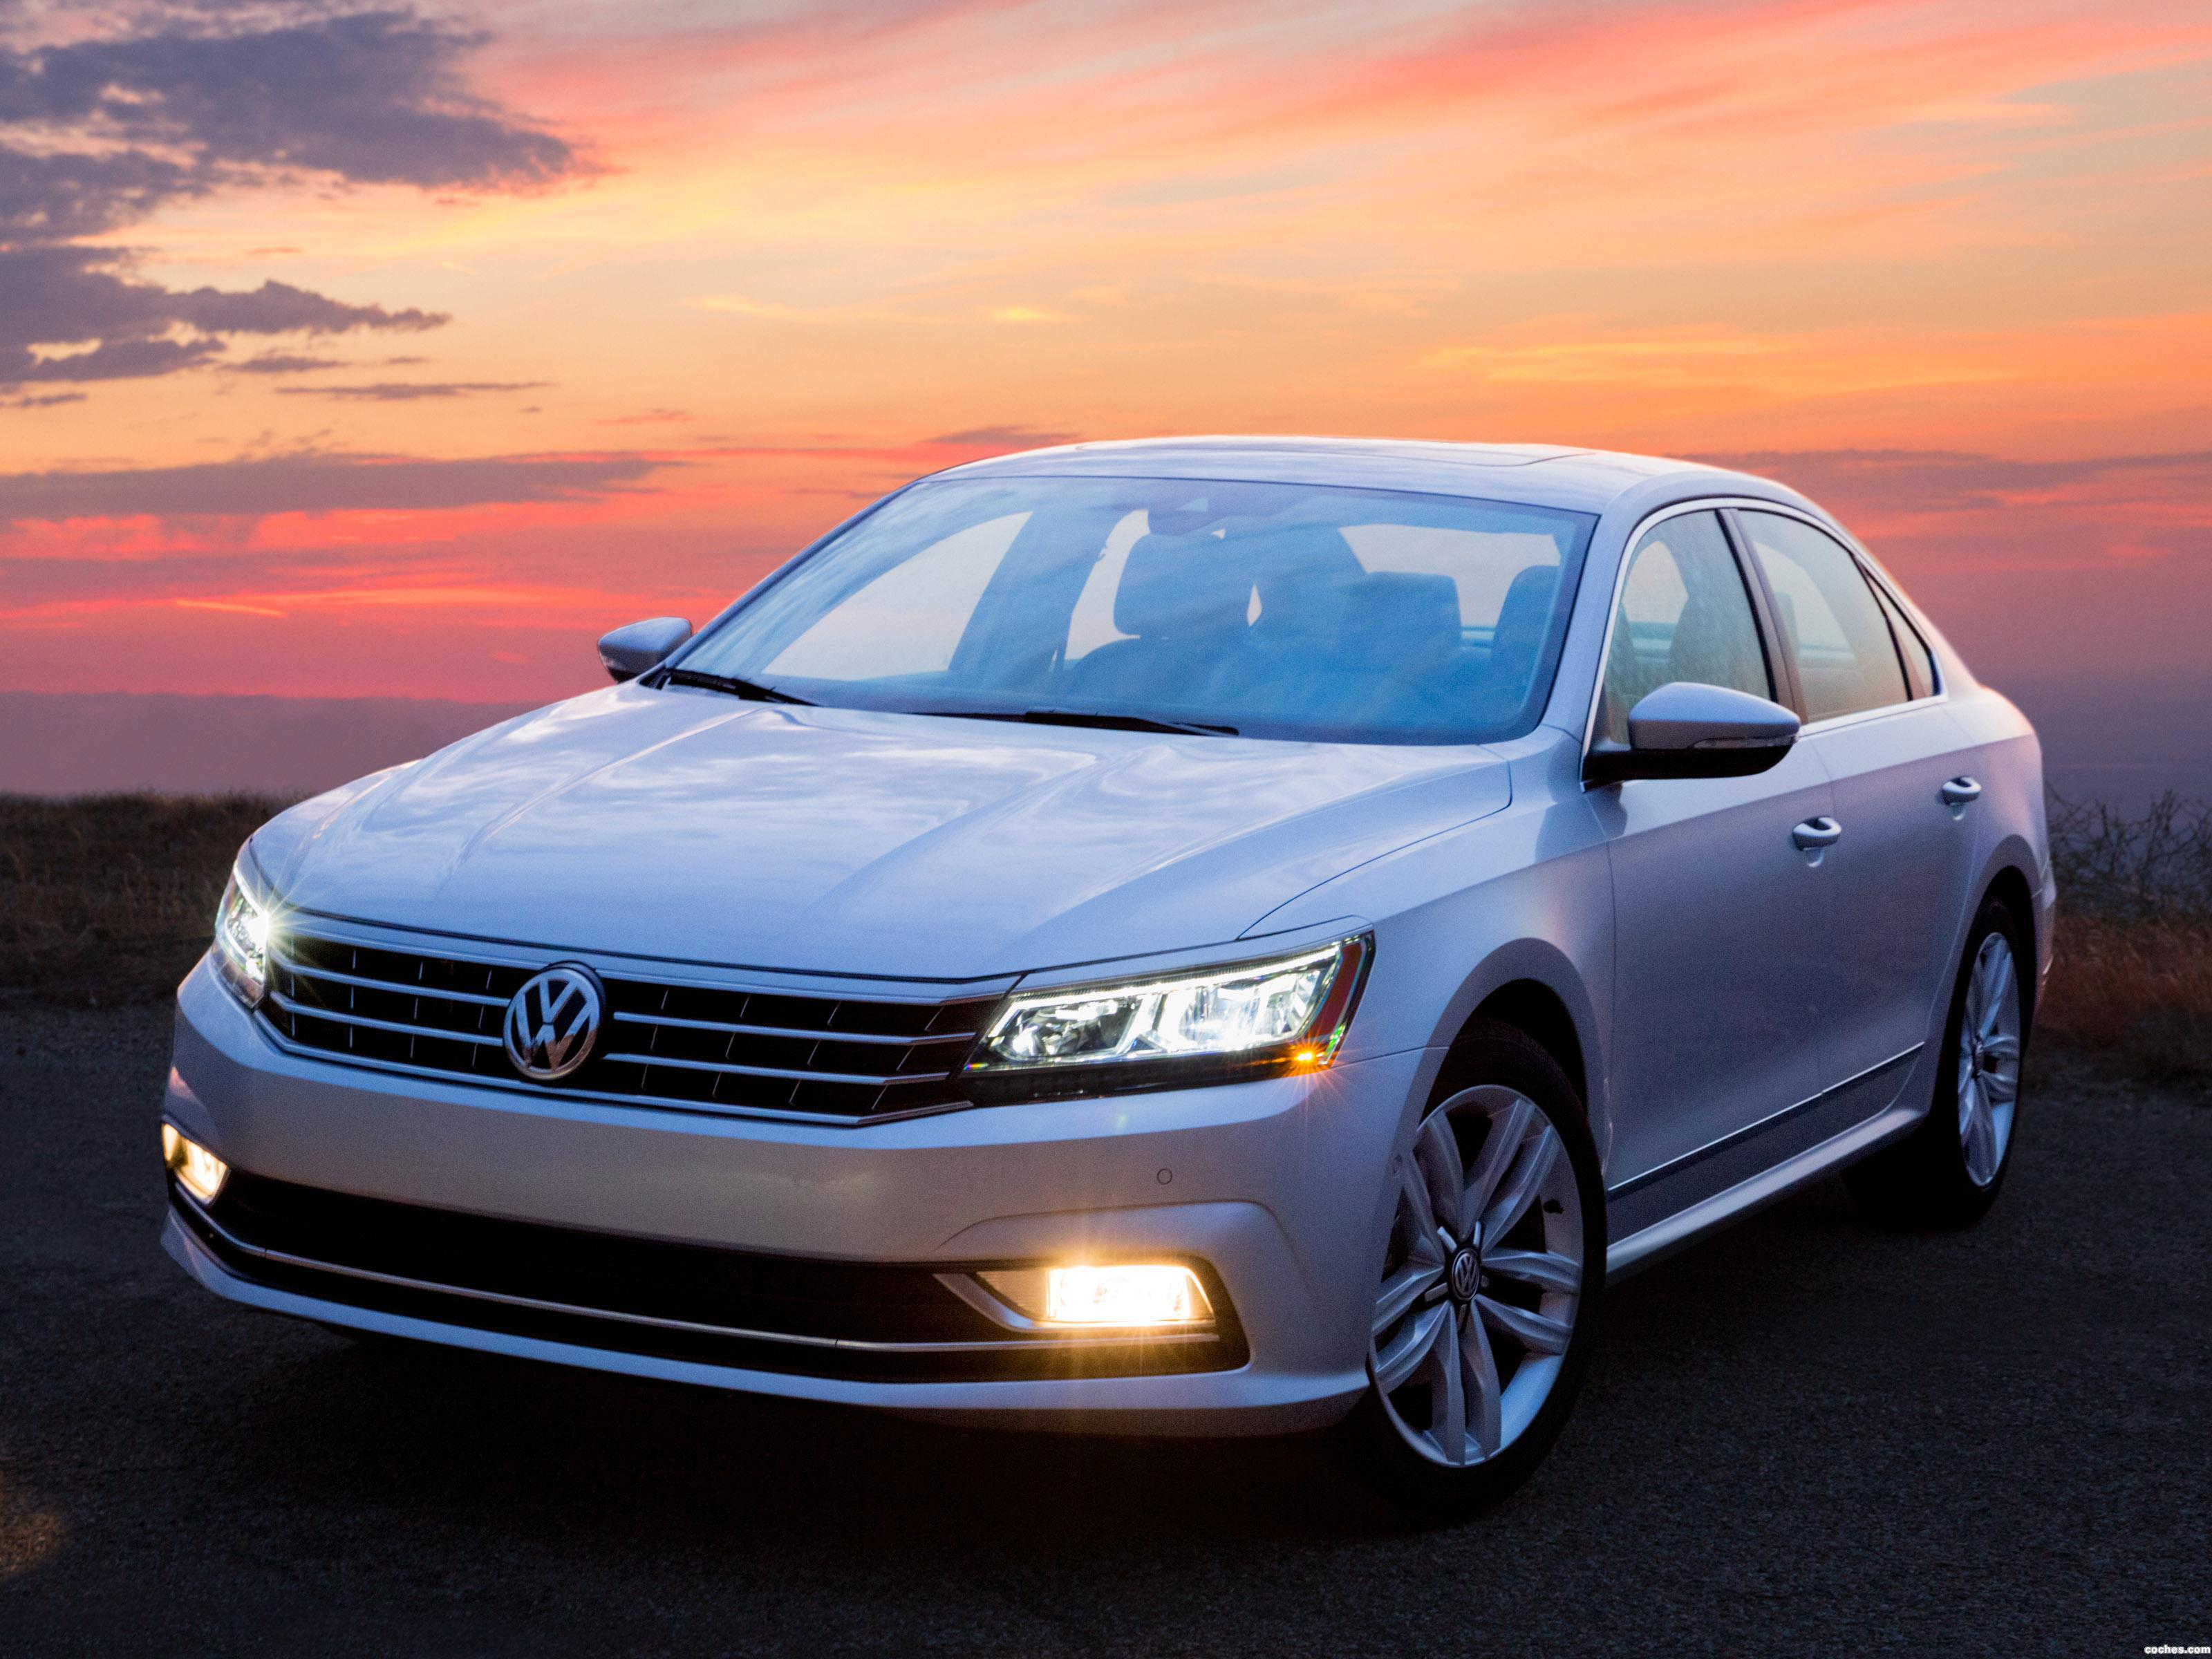 fotos de volkswagen passat tsi nms 2015 foto 10. Black Bedroom Furniture Sets. Home Design Ideas